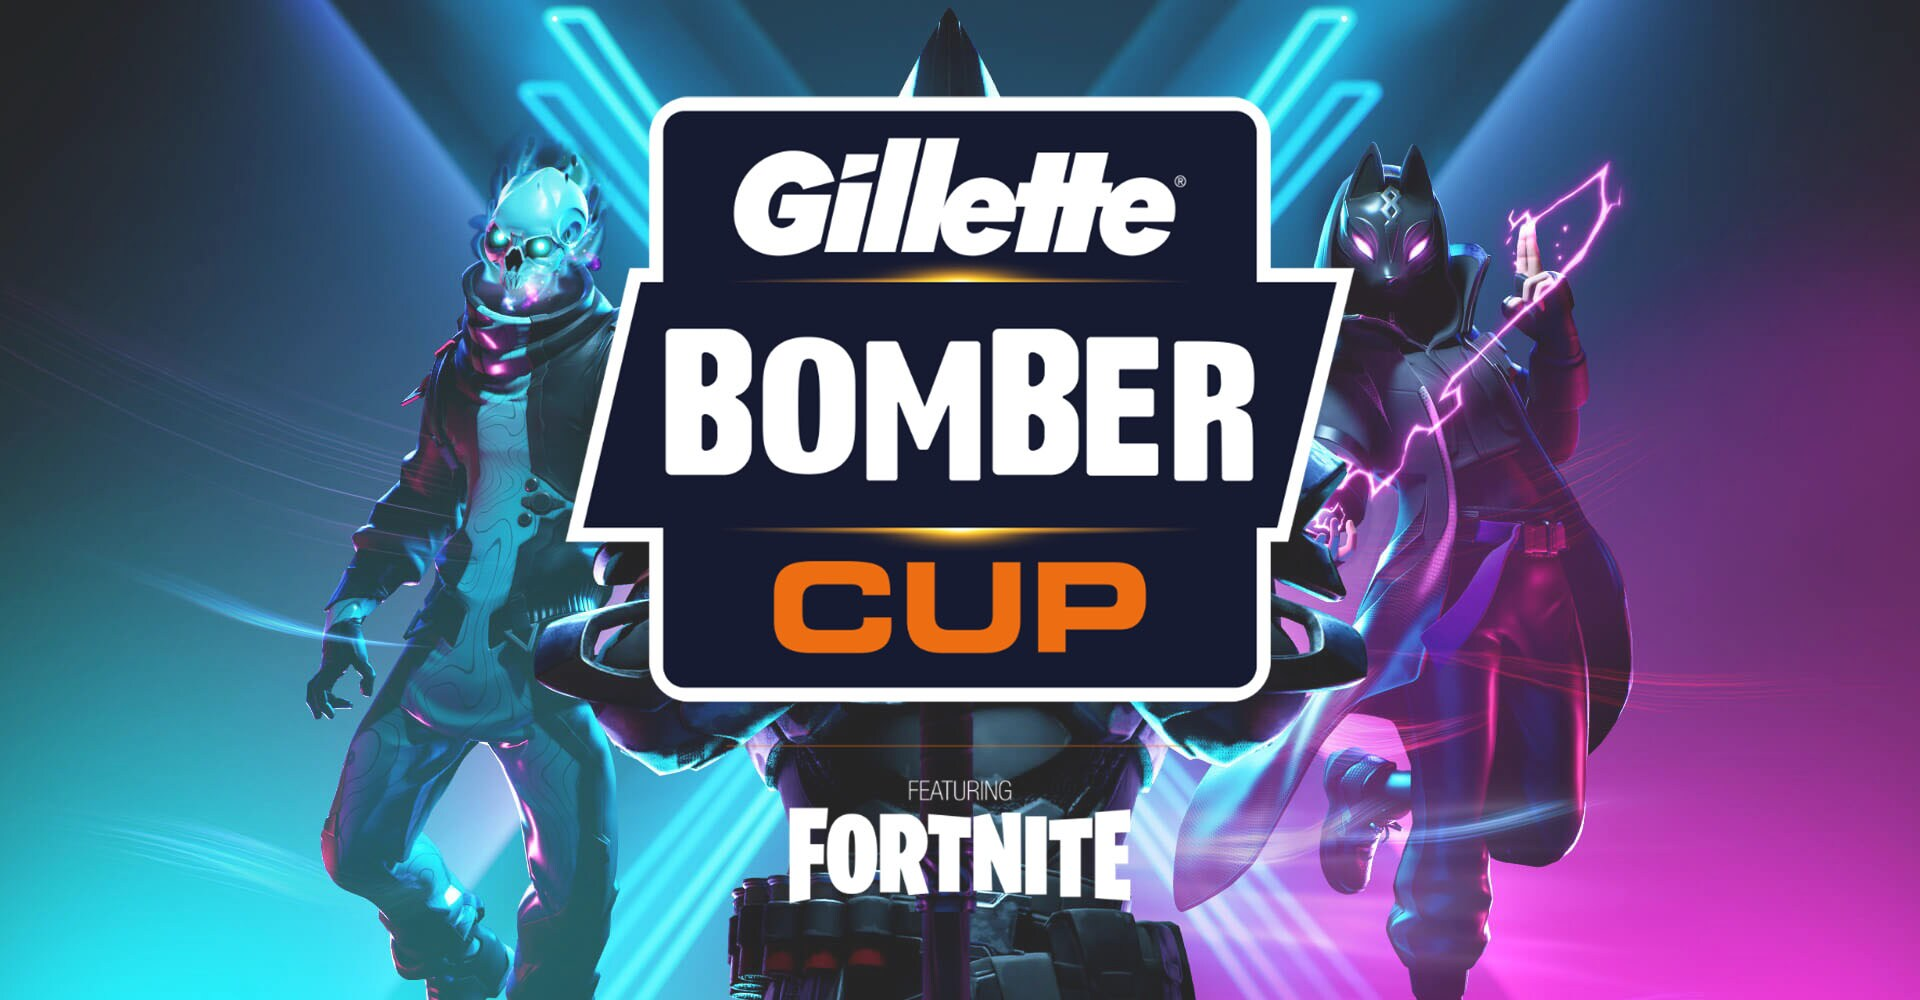 Gillette Bomber Cup, il torneo di Fortnite arriva alla Milan Games Week thumbnail